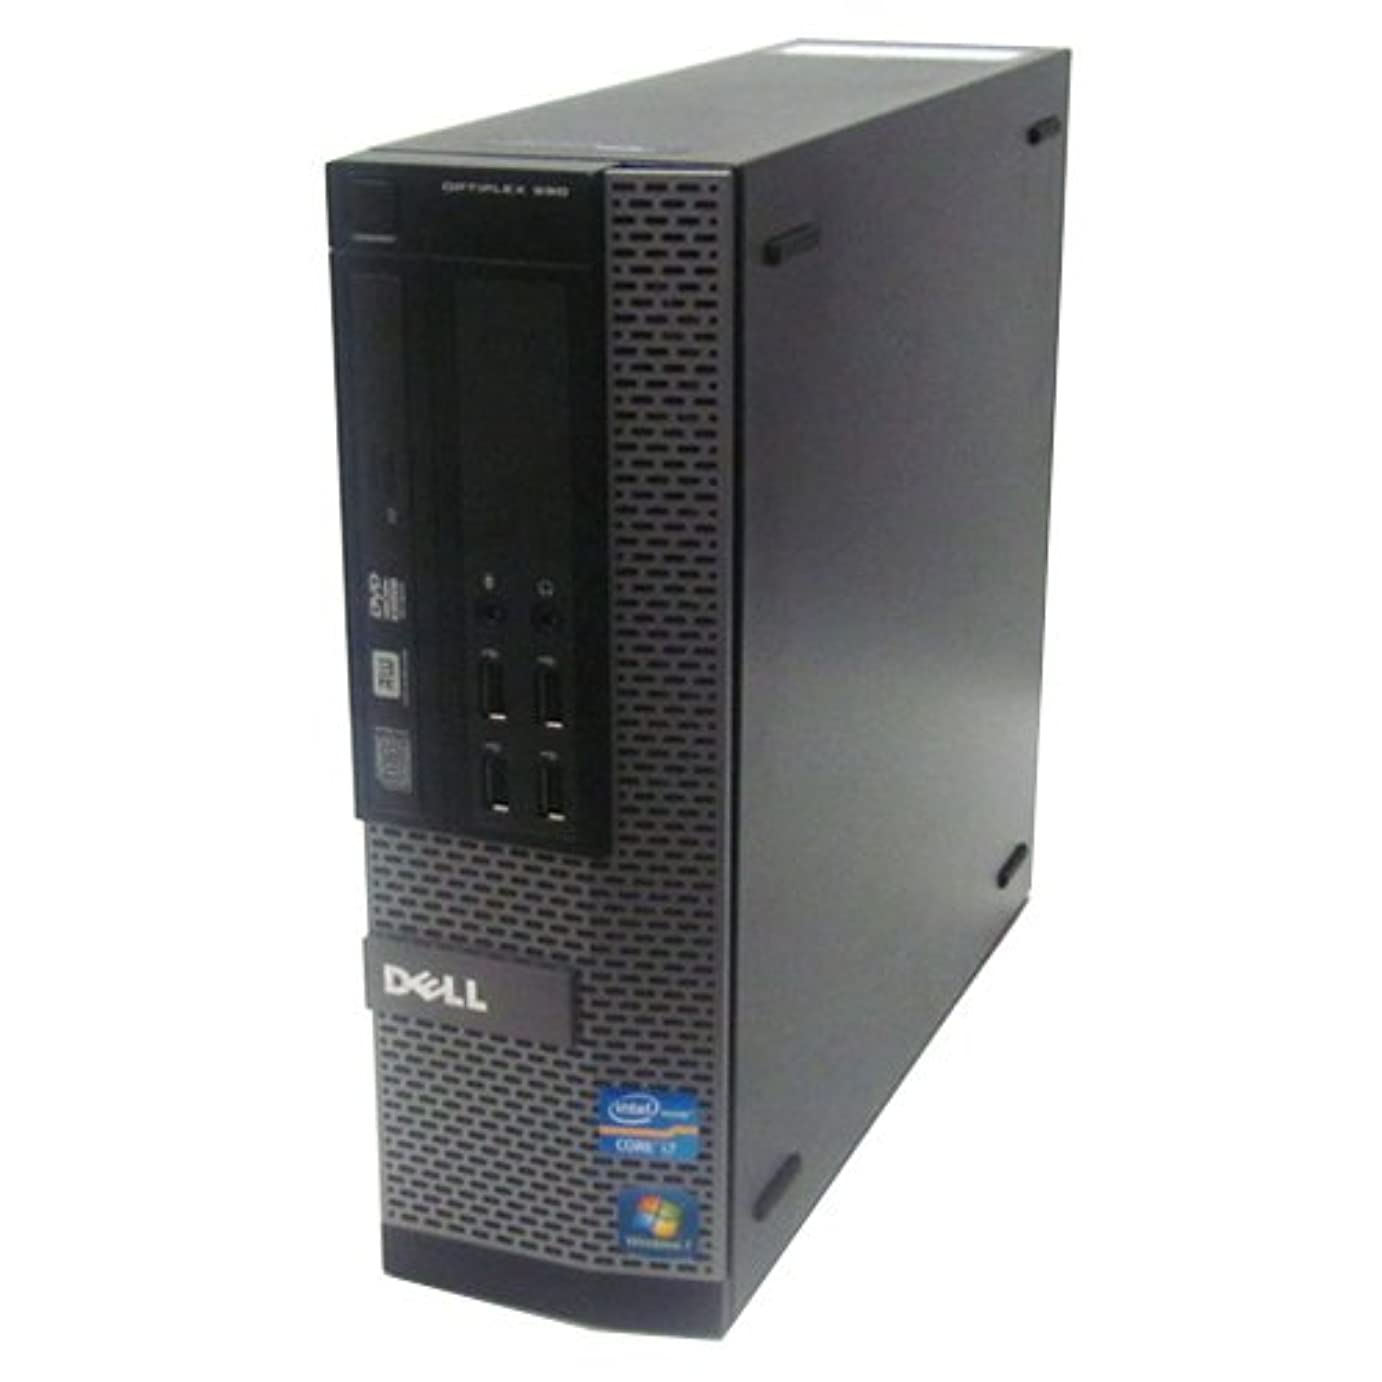 震える悲しい母DELL Optiplex 990SF core i7 3.4GHz 4GB 320GB Windows 7 Professional 64bit